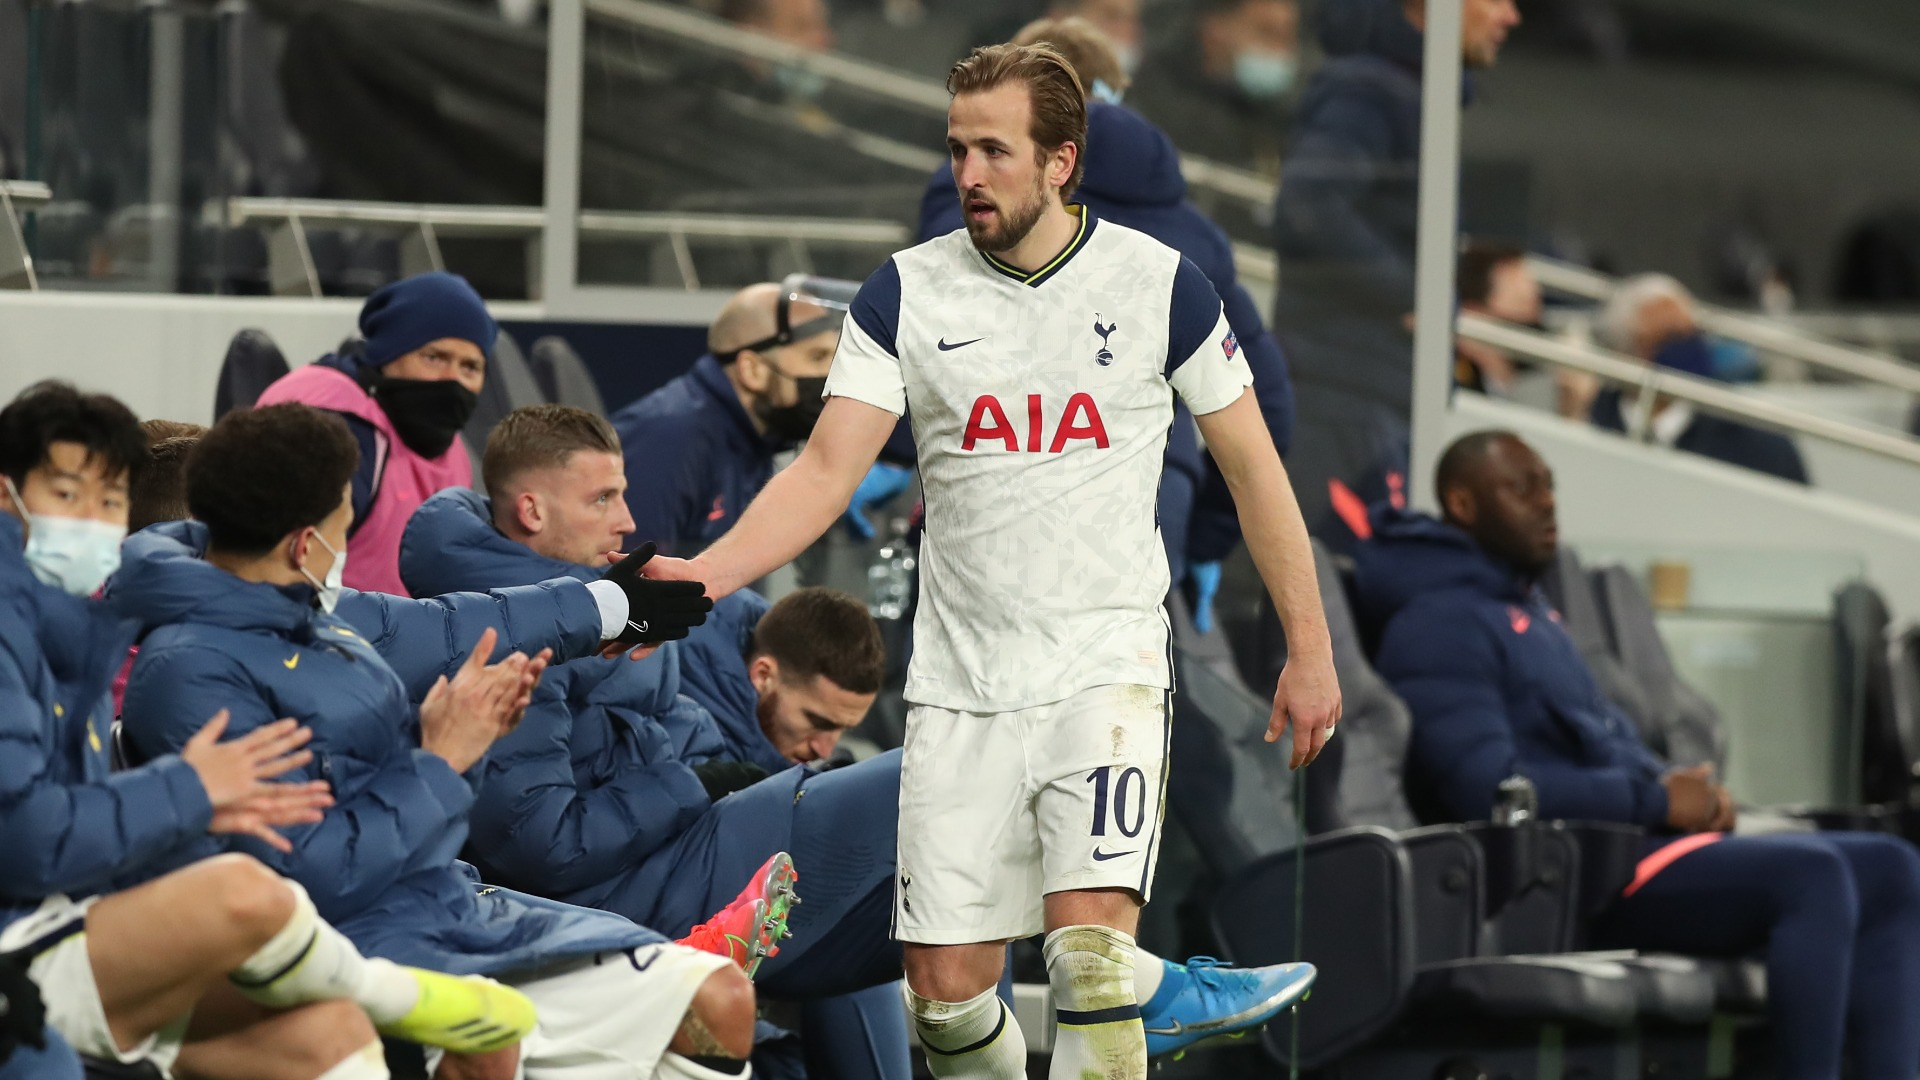 Mourinho confident Spurs star Kane will be fit for Arsenal clash